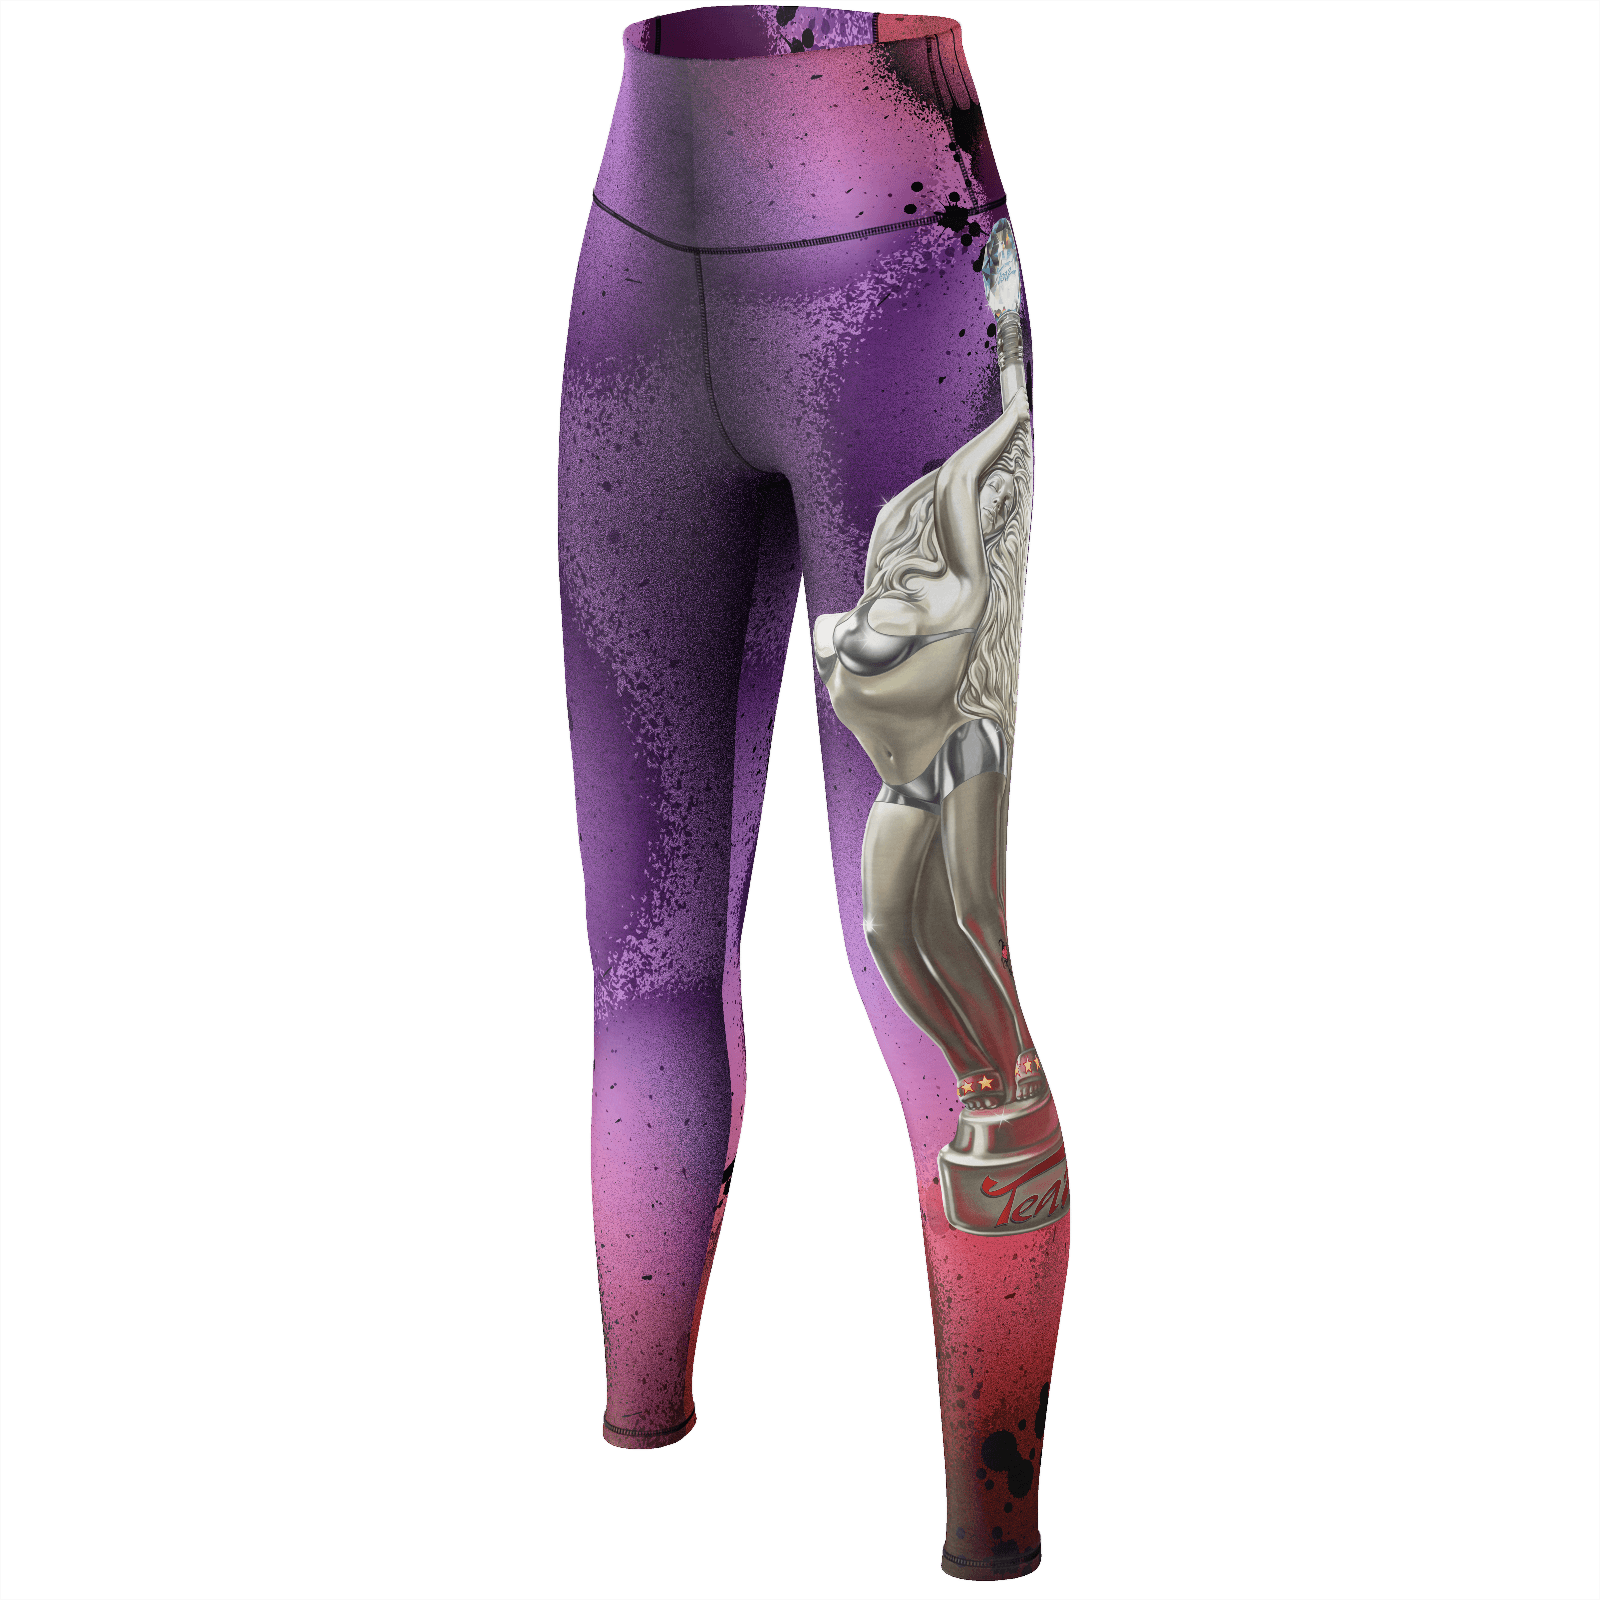 Teaz Girl Graffiti Yoga Pants, Purple & Red